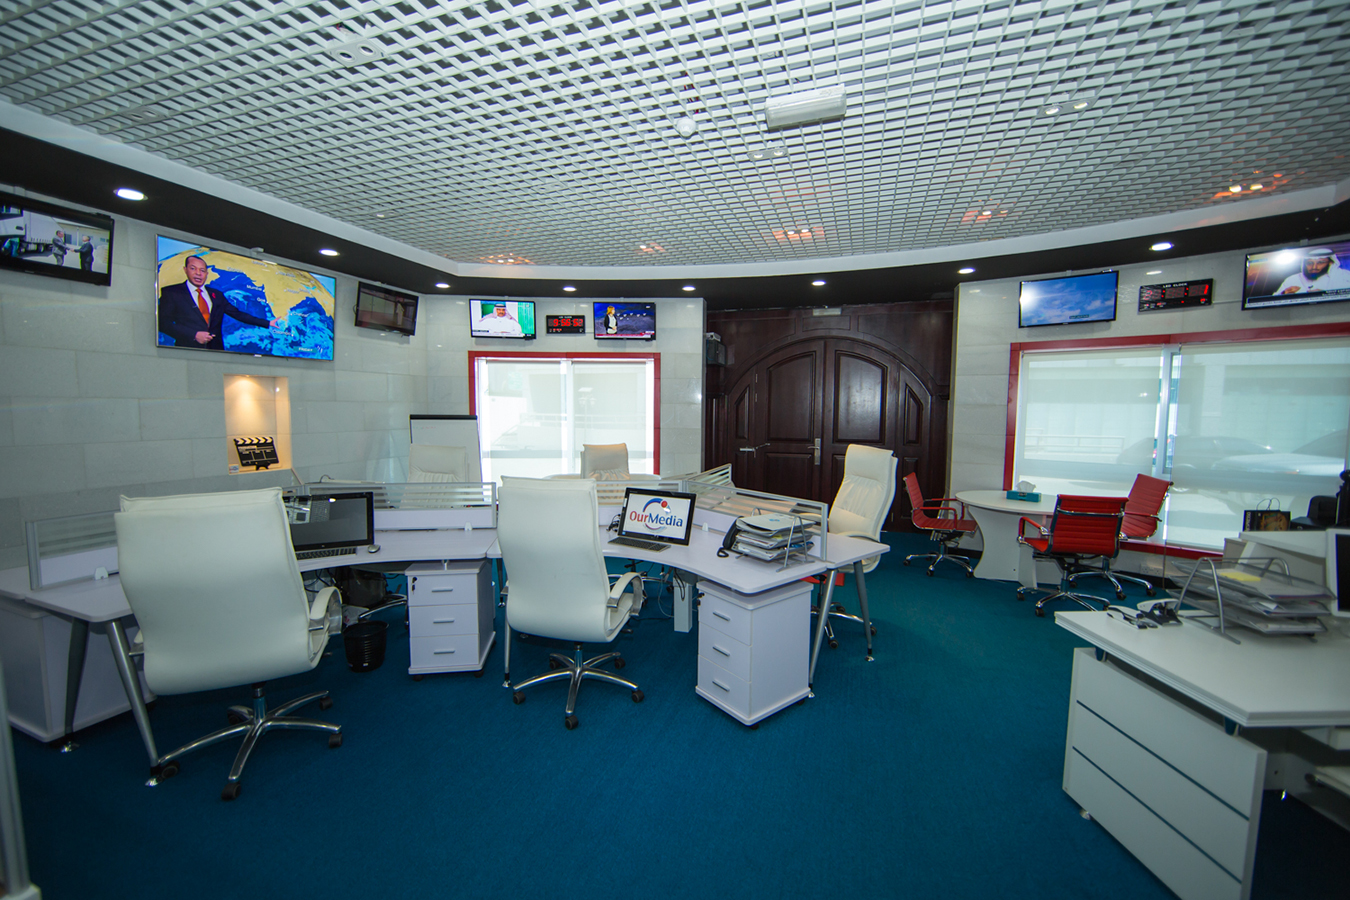 Our Media News team provides services to news broadcaster around the globe. We have our own stringers network around the globe which is connected to central news room. Monitoring of national and international News channels is available at our news room, while the reporters utilize the Internet and telephone facilities.